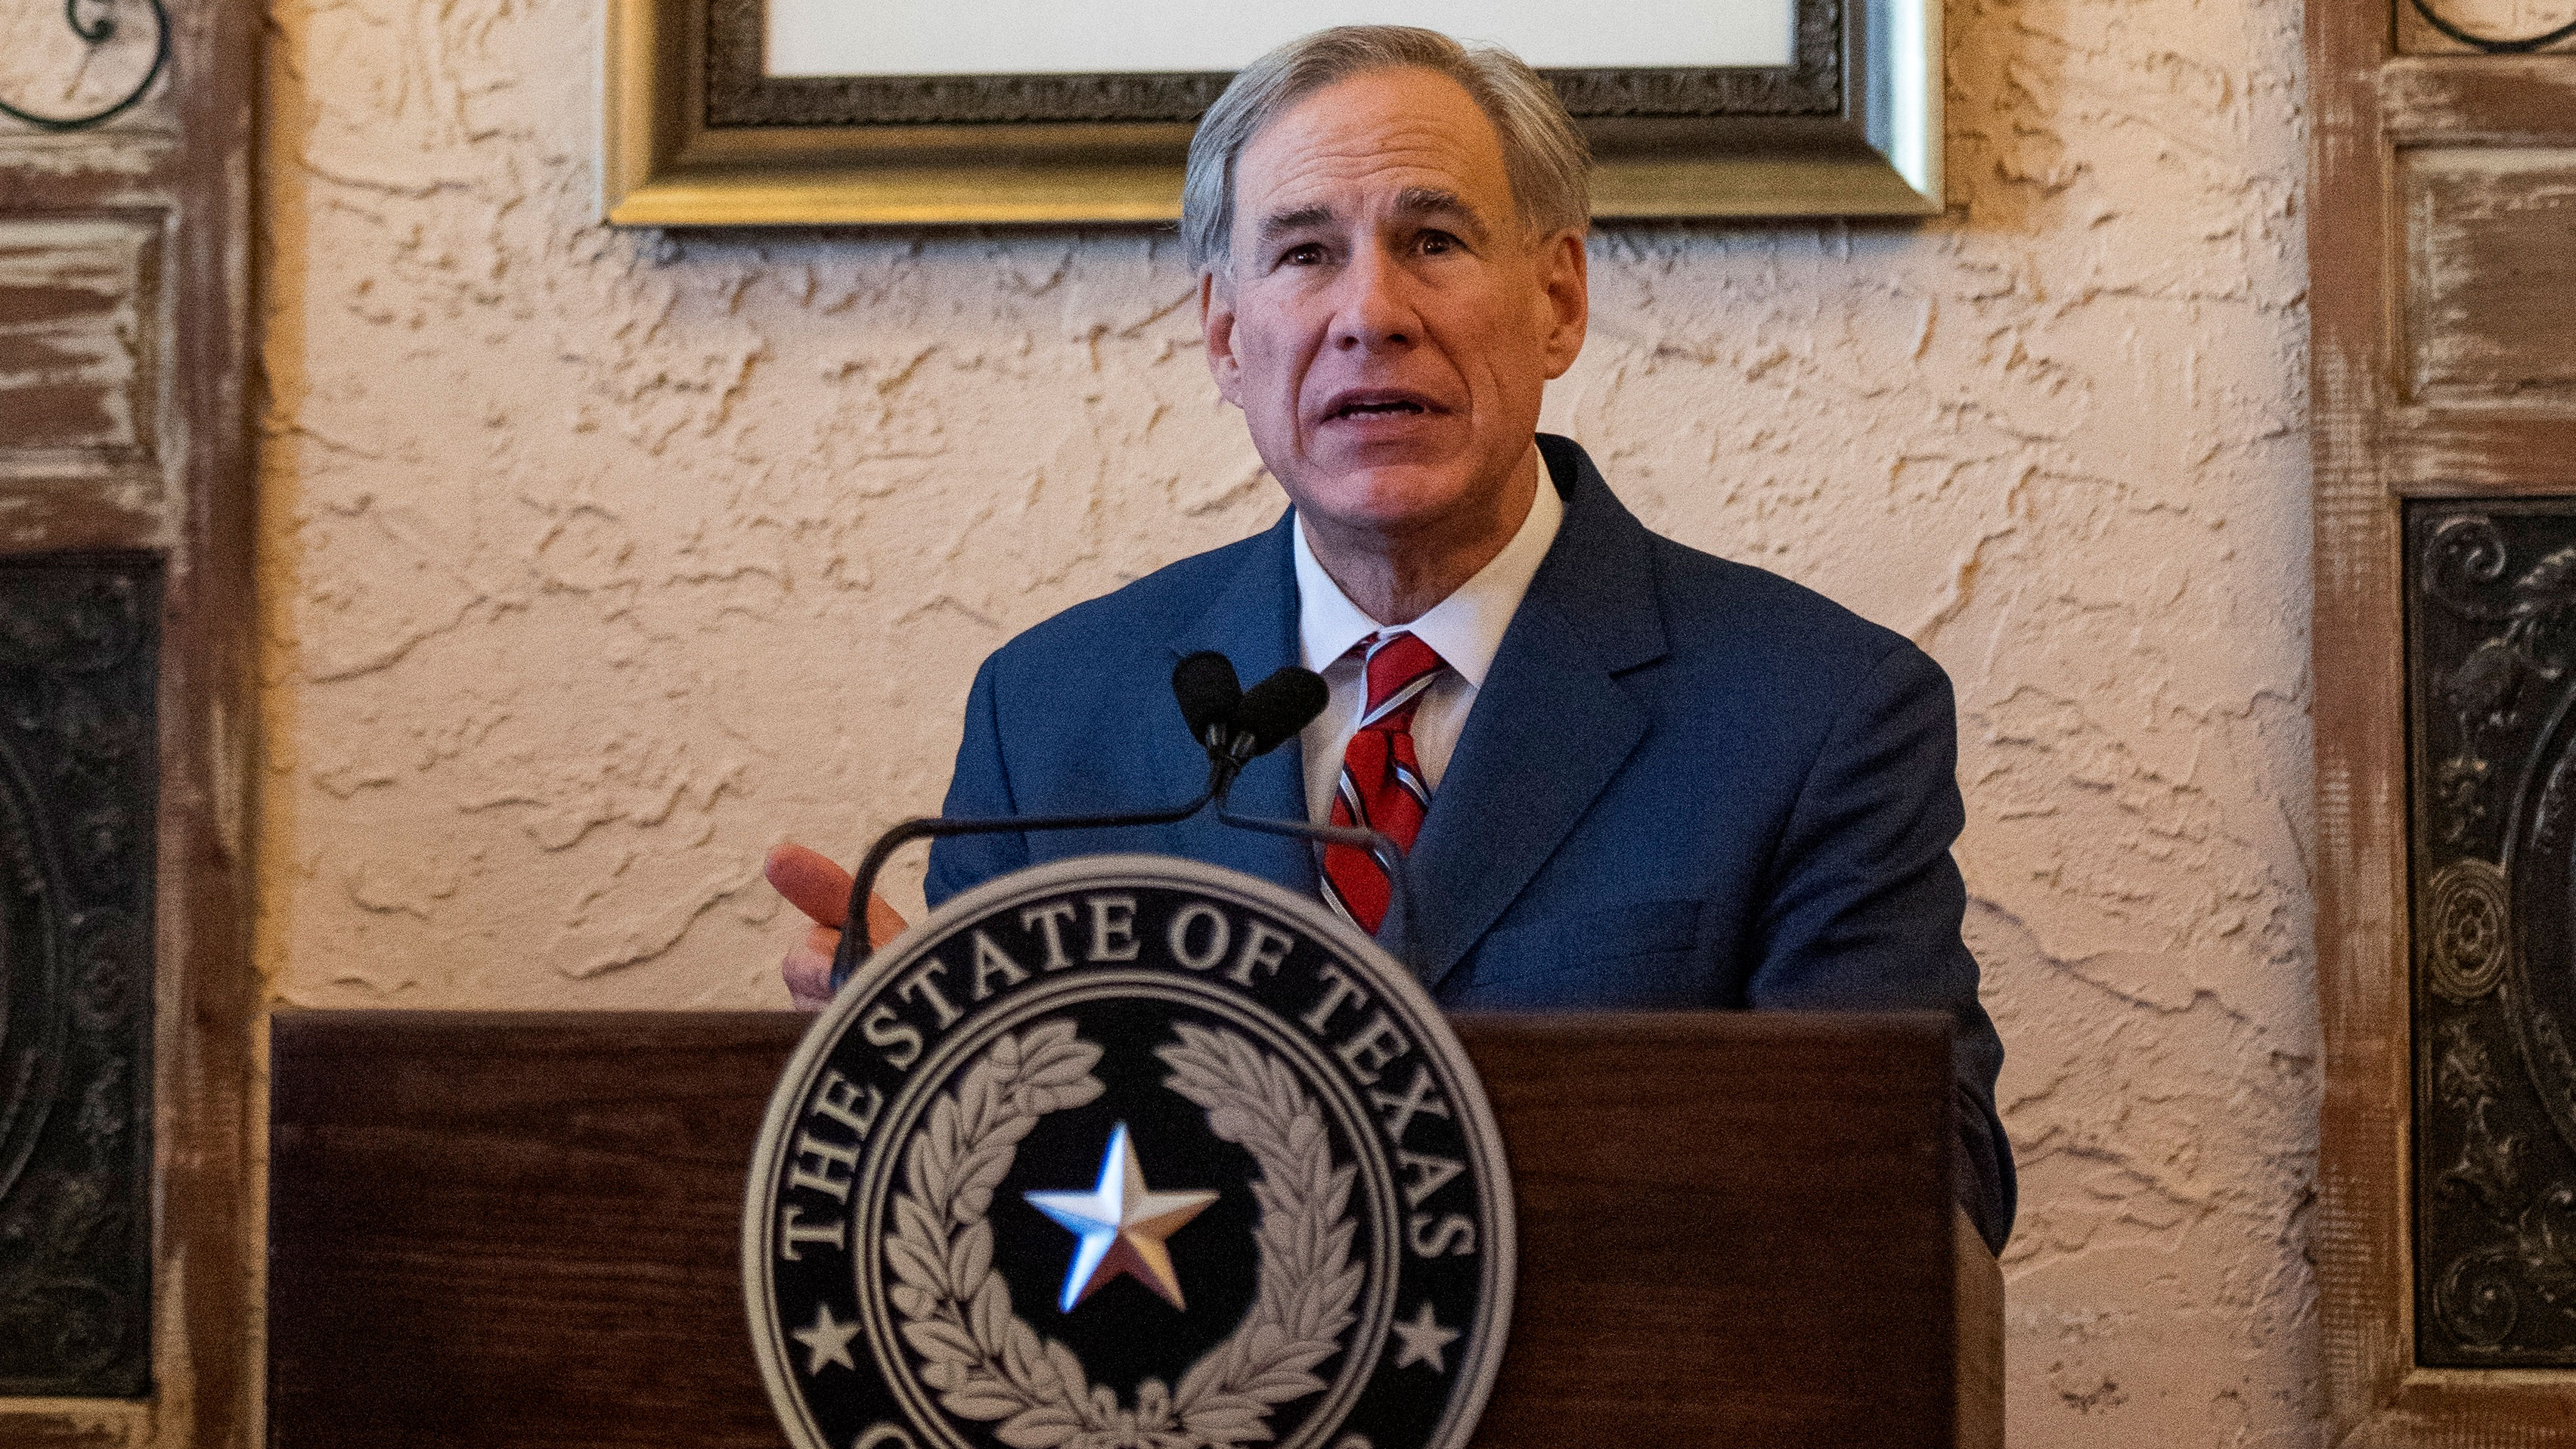 Texas Gov. Greg Abbott makes an announcement in Lubbock, Texas, on March 2.